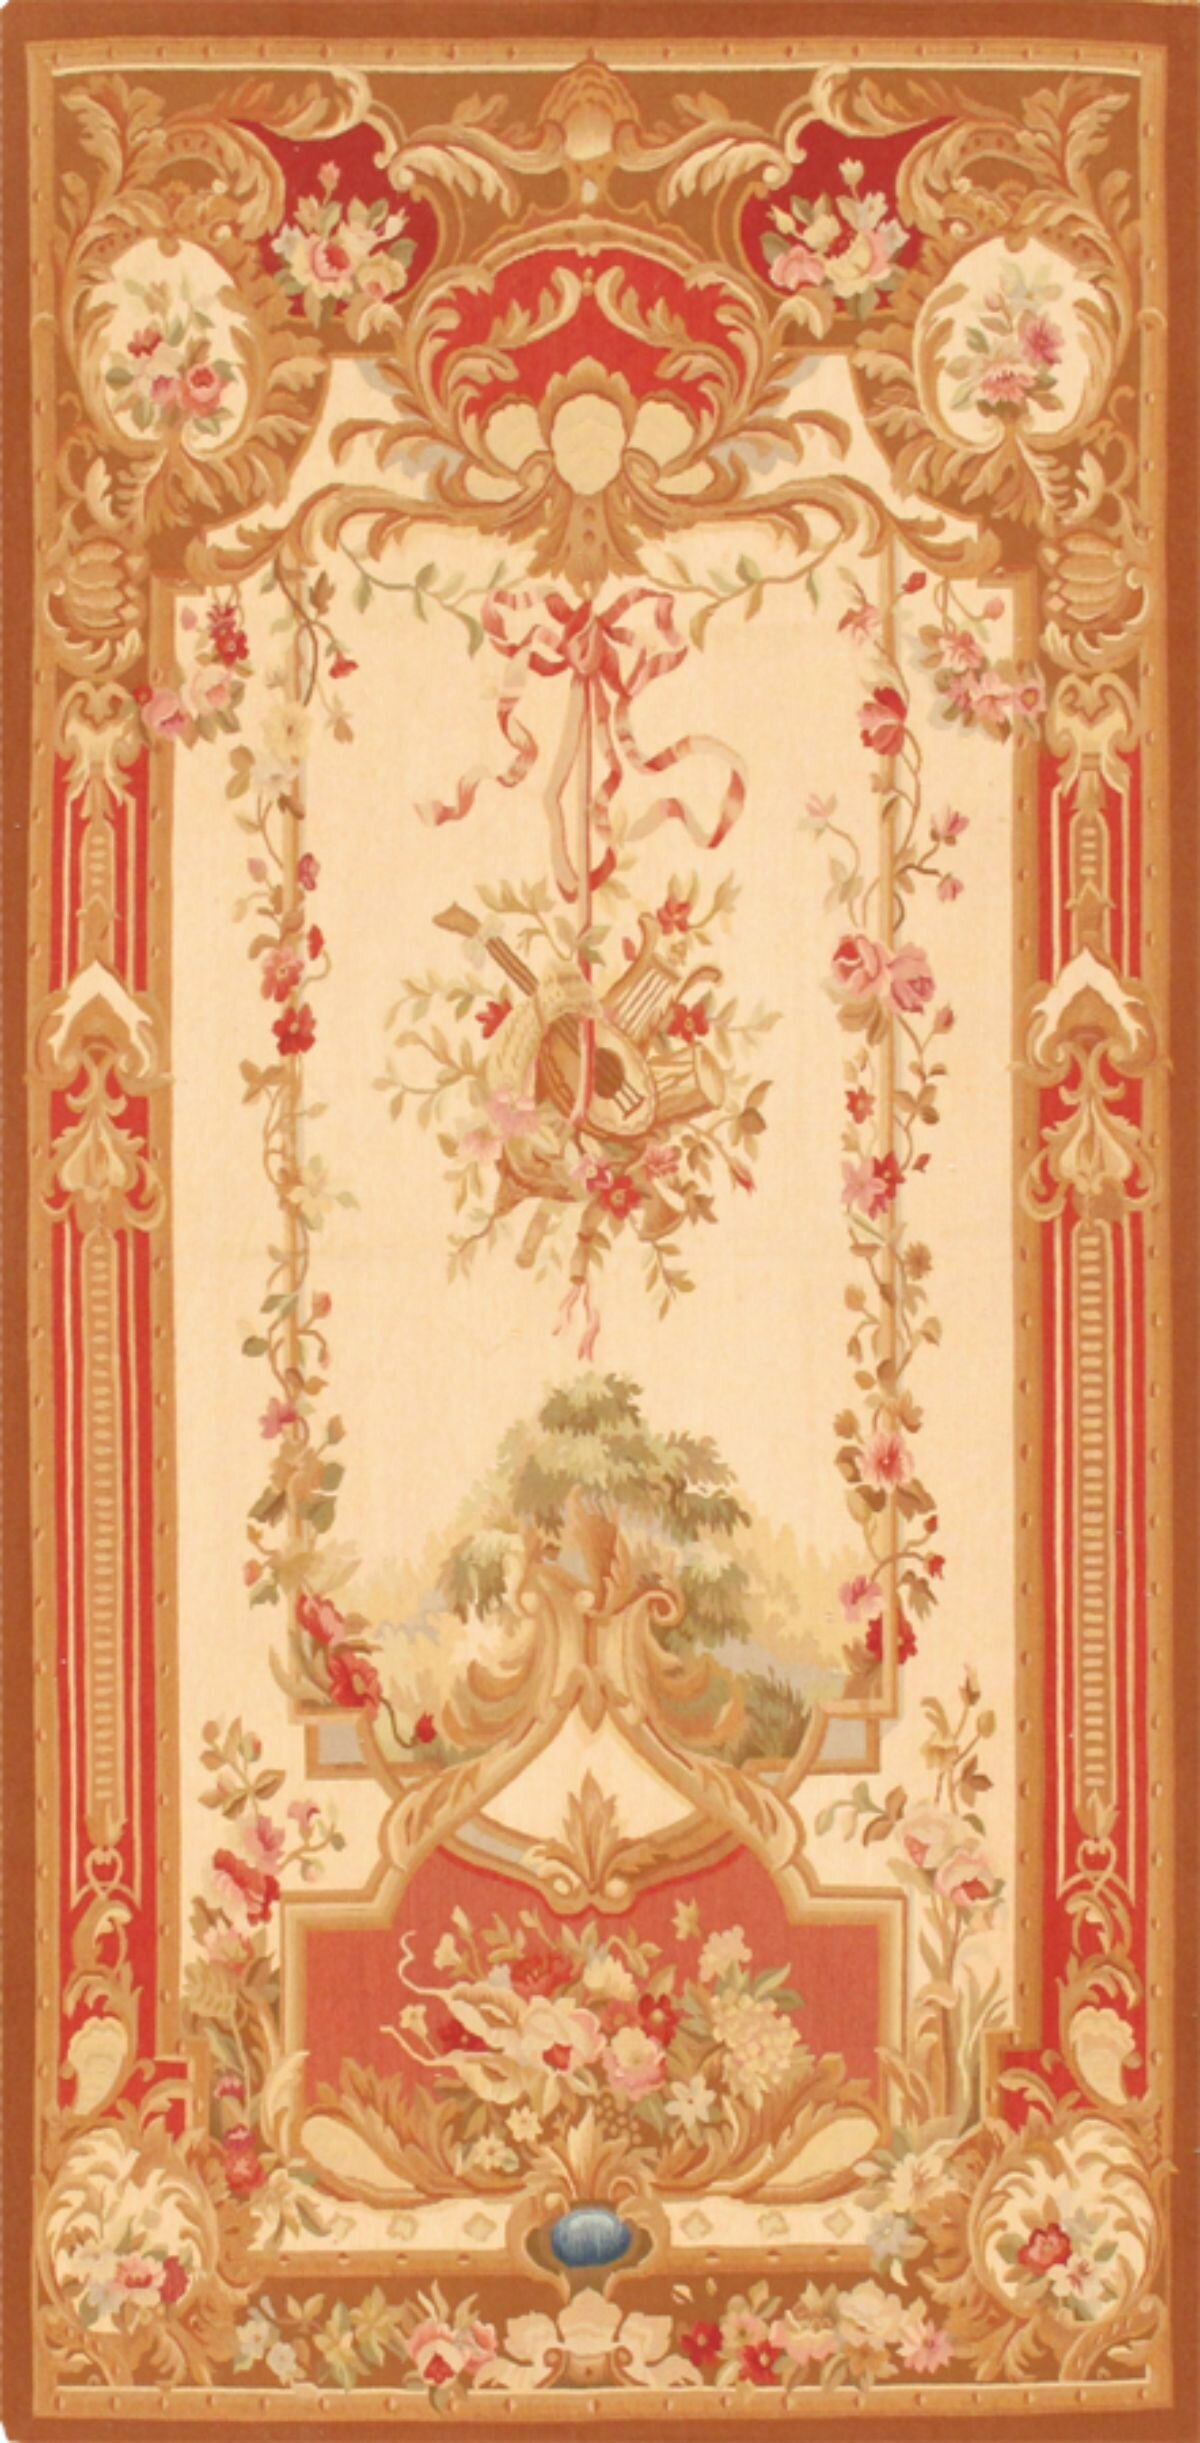 Tapestry In Best And Newest Blended Fabric Ethereal Days Chinoiserie Wall Hangings With Rod (View 13 of 20)